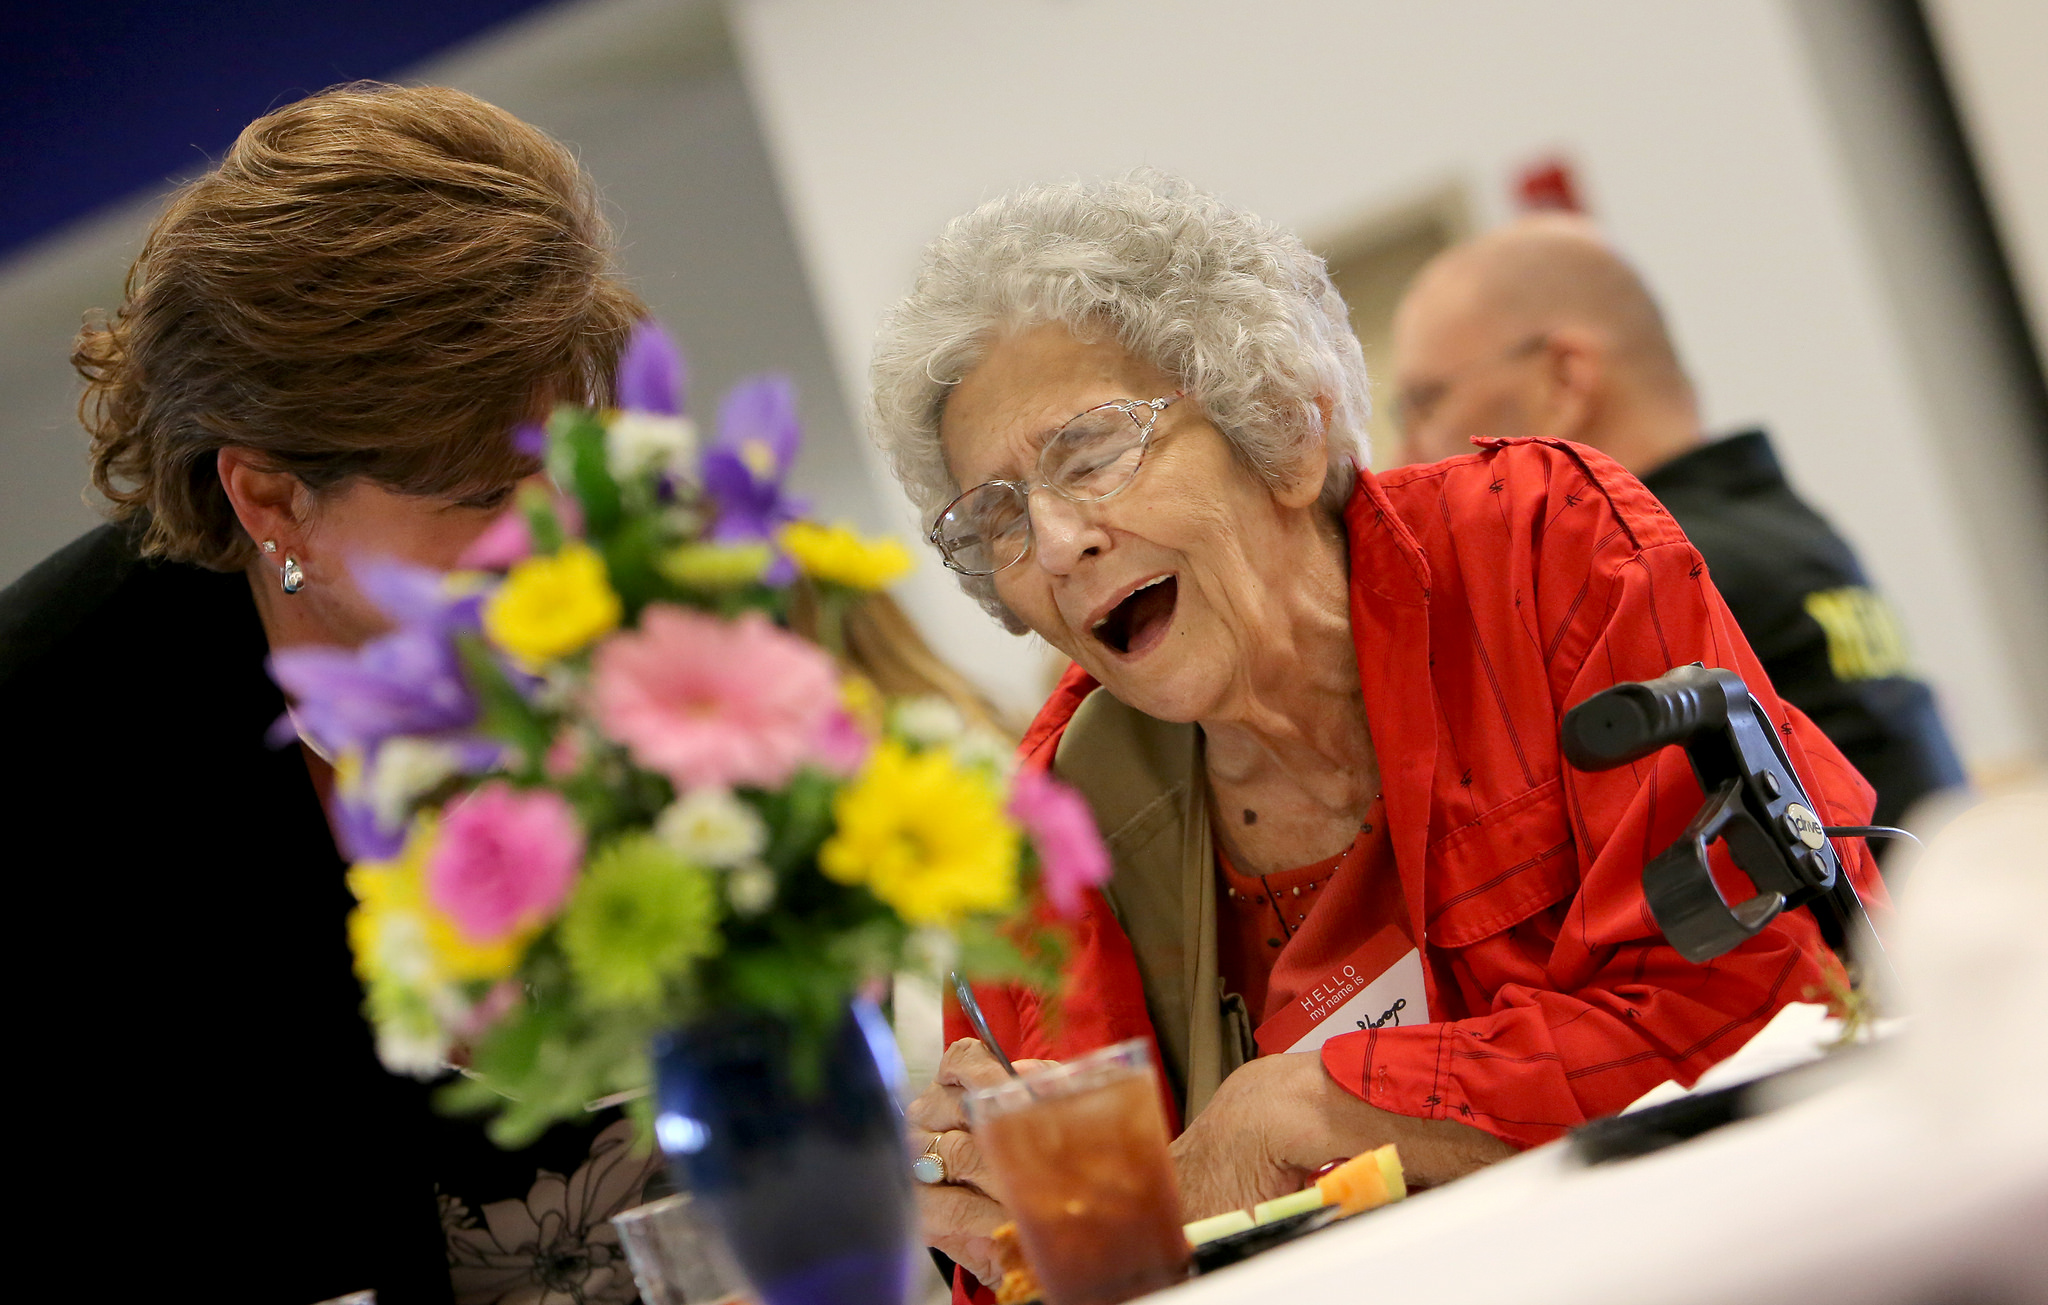 LVAD patient Mary Shoop jokes around during Penn State Health Milton S. Hershey Medical Center's annual LVAD celebration at the University Conference Center on Friday, April 27, 2018.